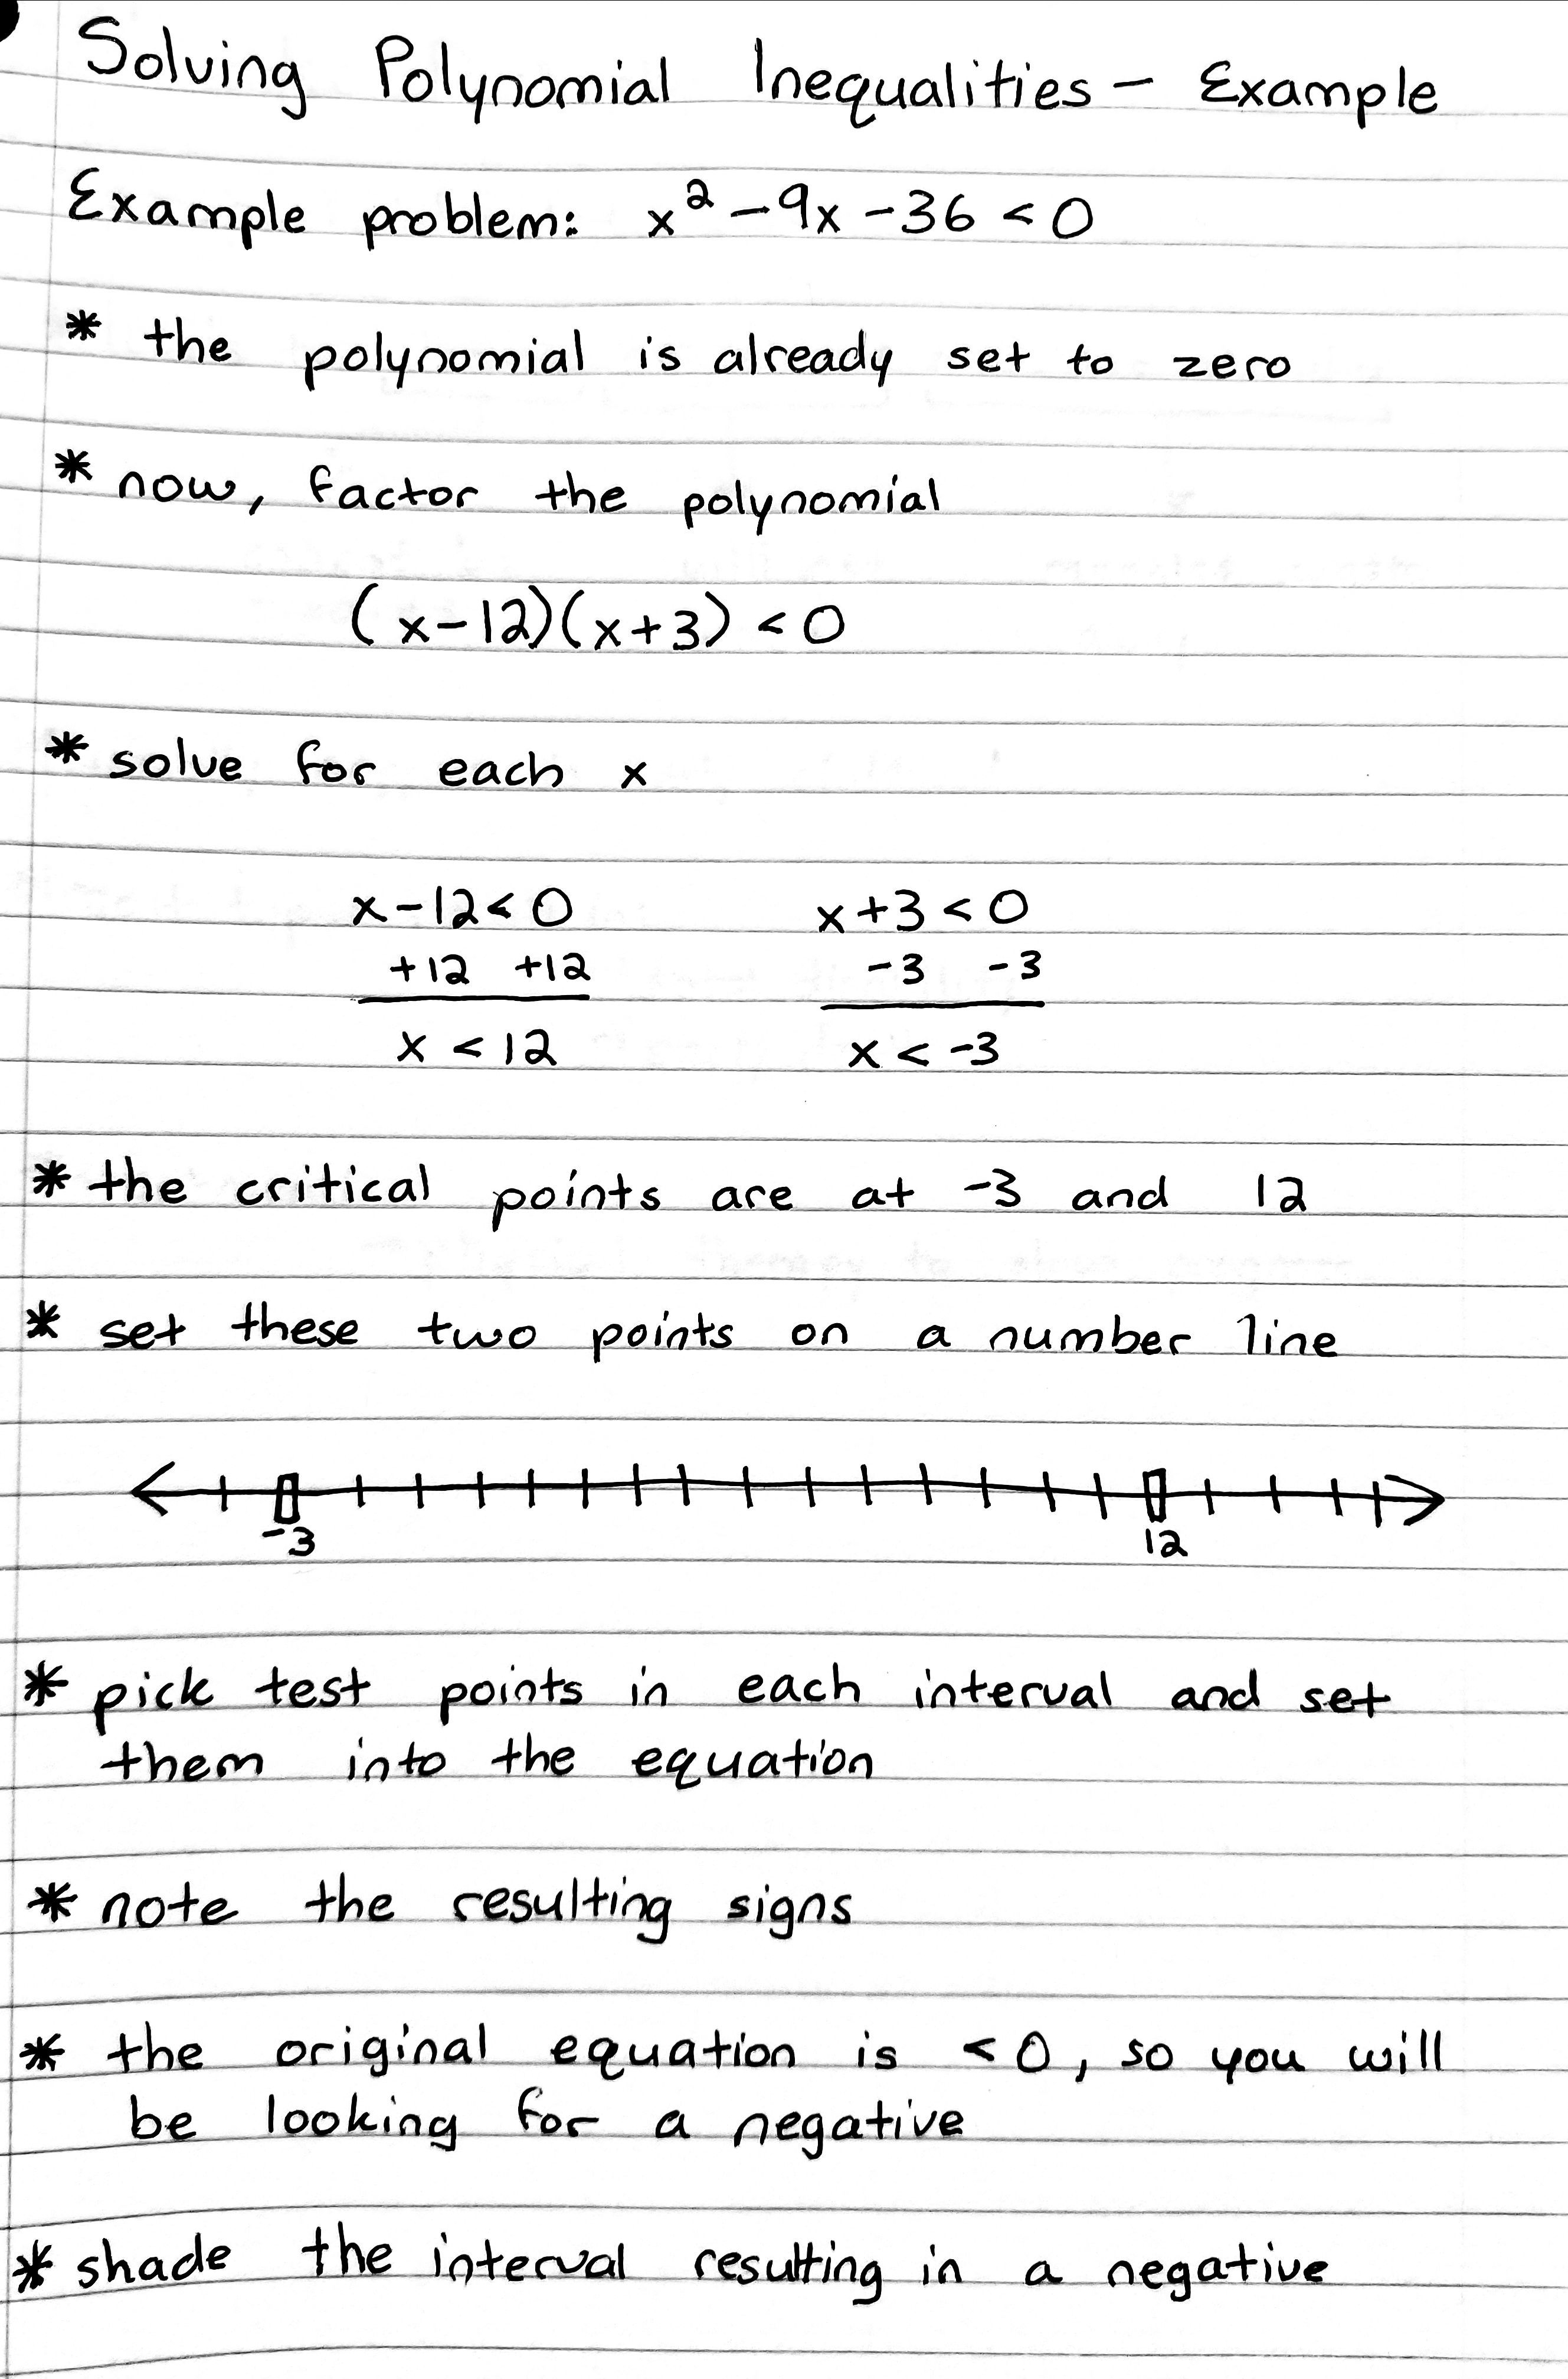 Solving Polynomial Inequalities Example Teaching Writing Physics Notes Arithmetic